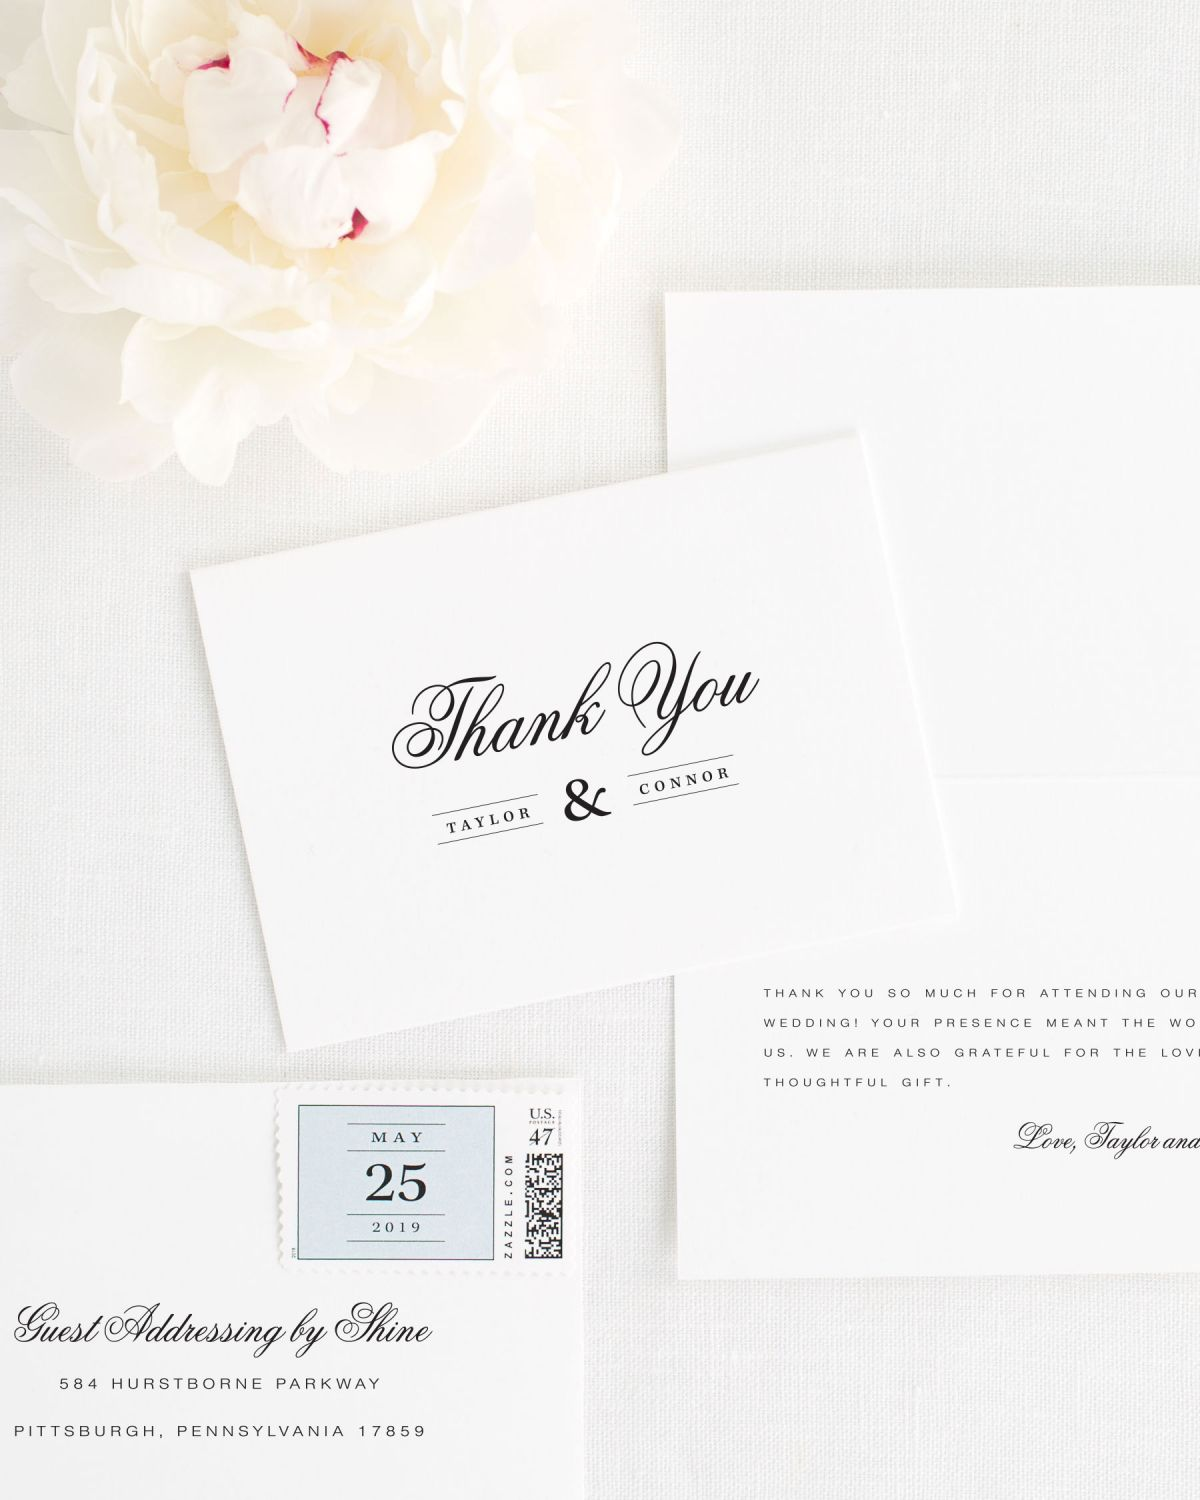 Timeless Thank You Cards with personialized message